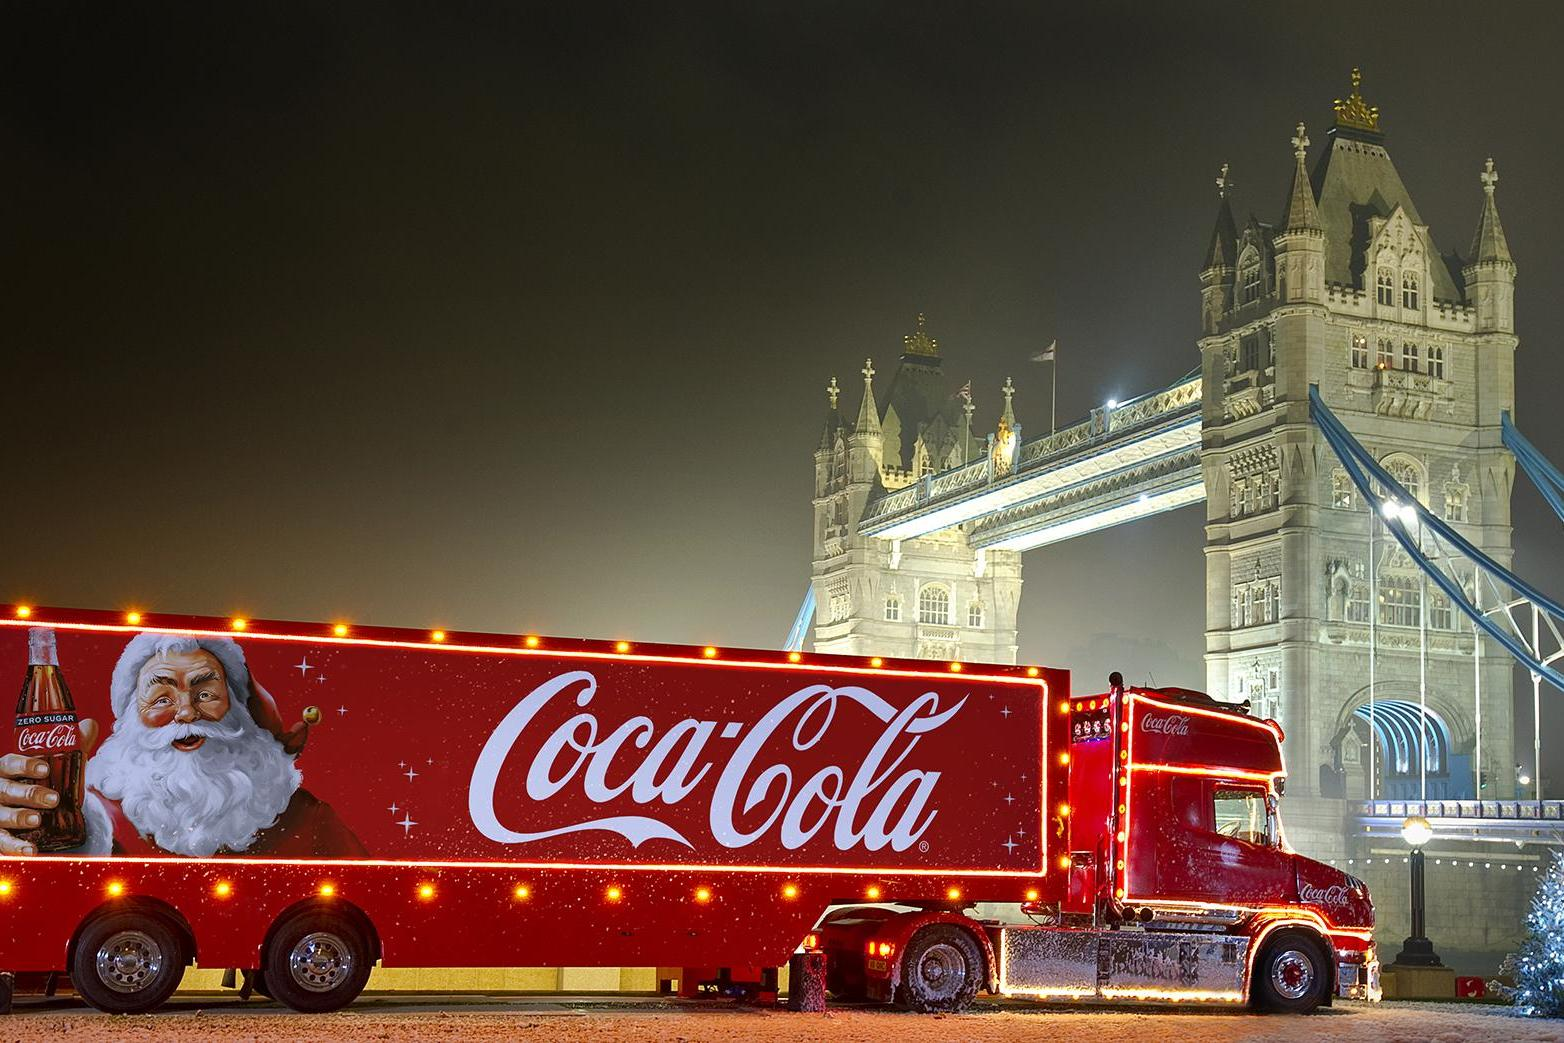 Coca Cola Christmas Truck Tour Dates And Locations Revealed The Independent The Independent